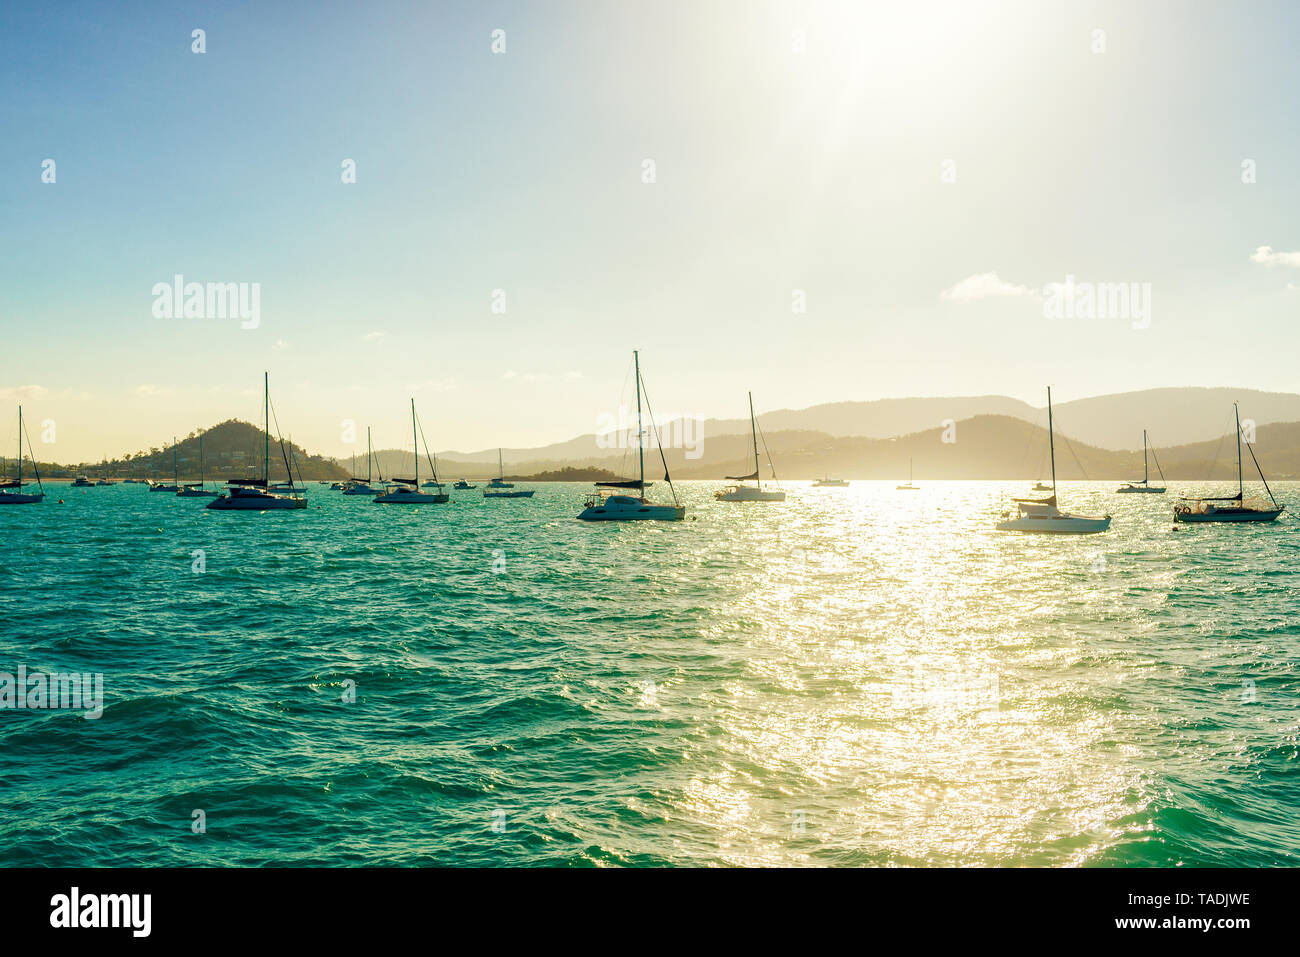 Australia, Queensland, Airlie Beach, landscape with boats at sunset - Stock Image